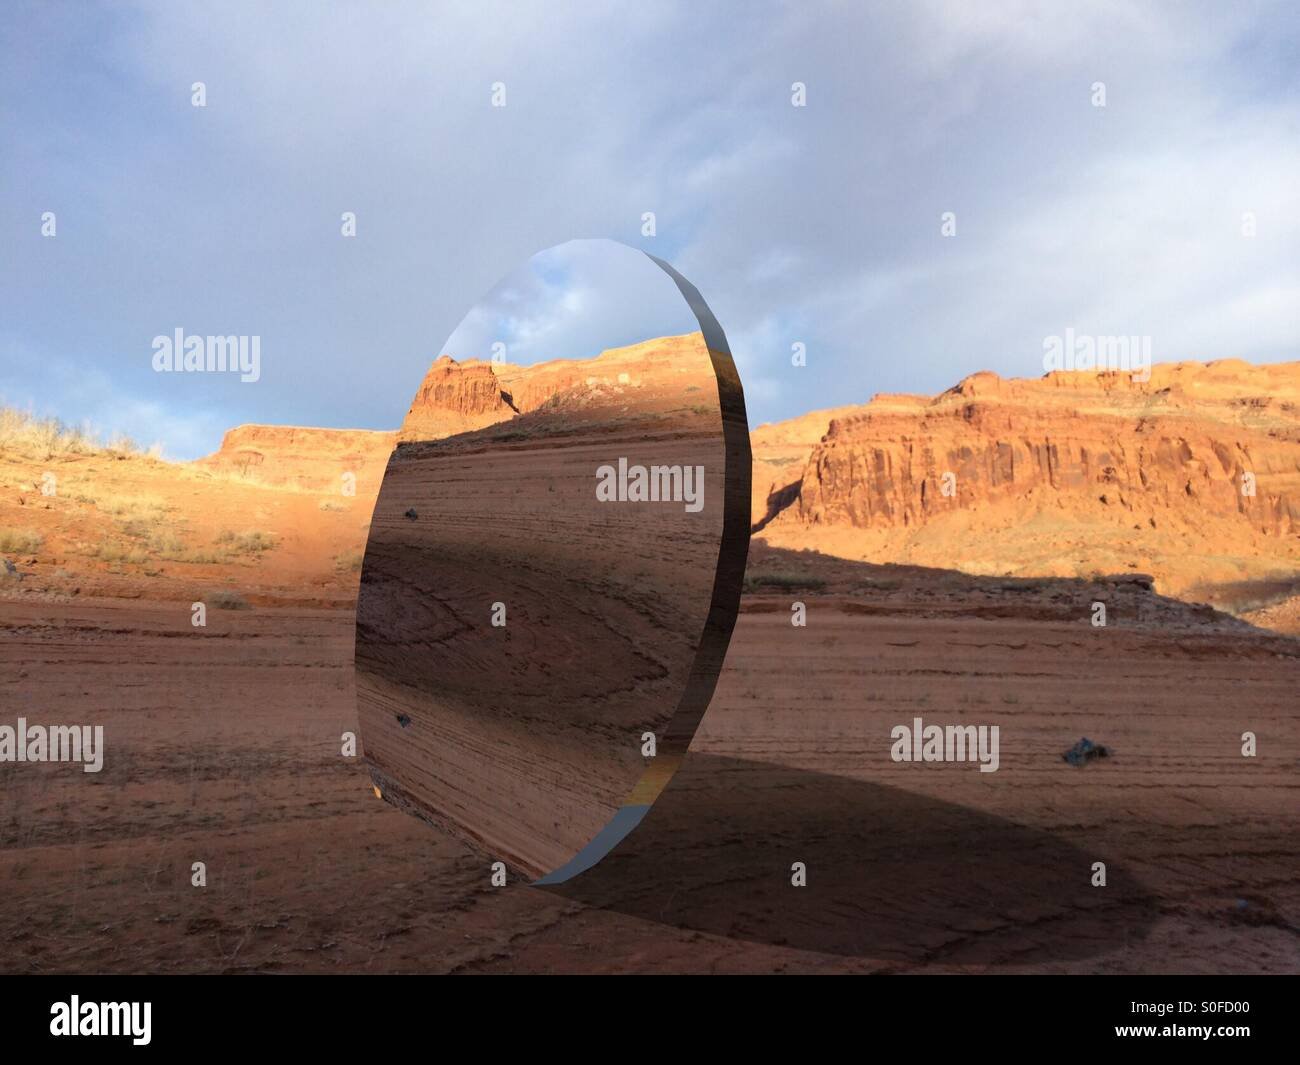 Large round mirror in desert - Stock Image